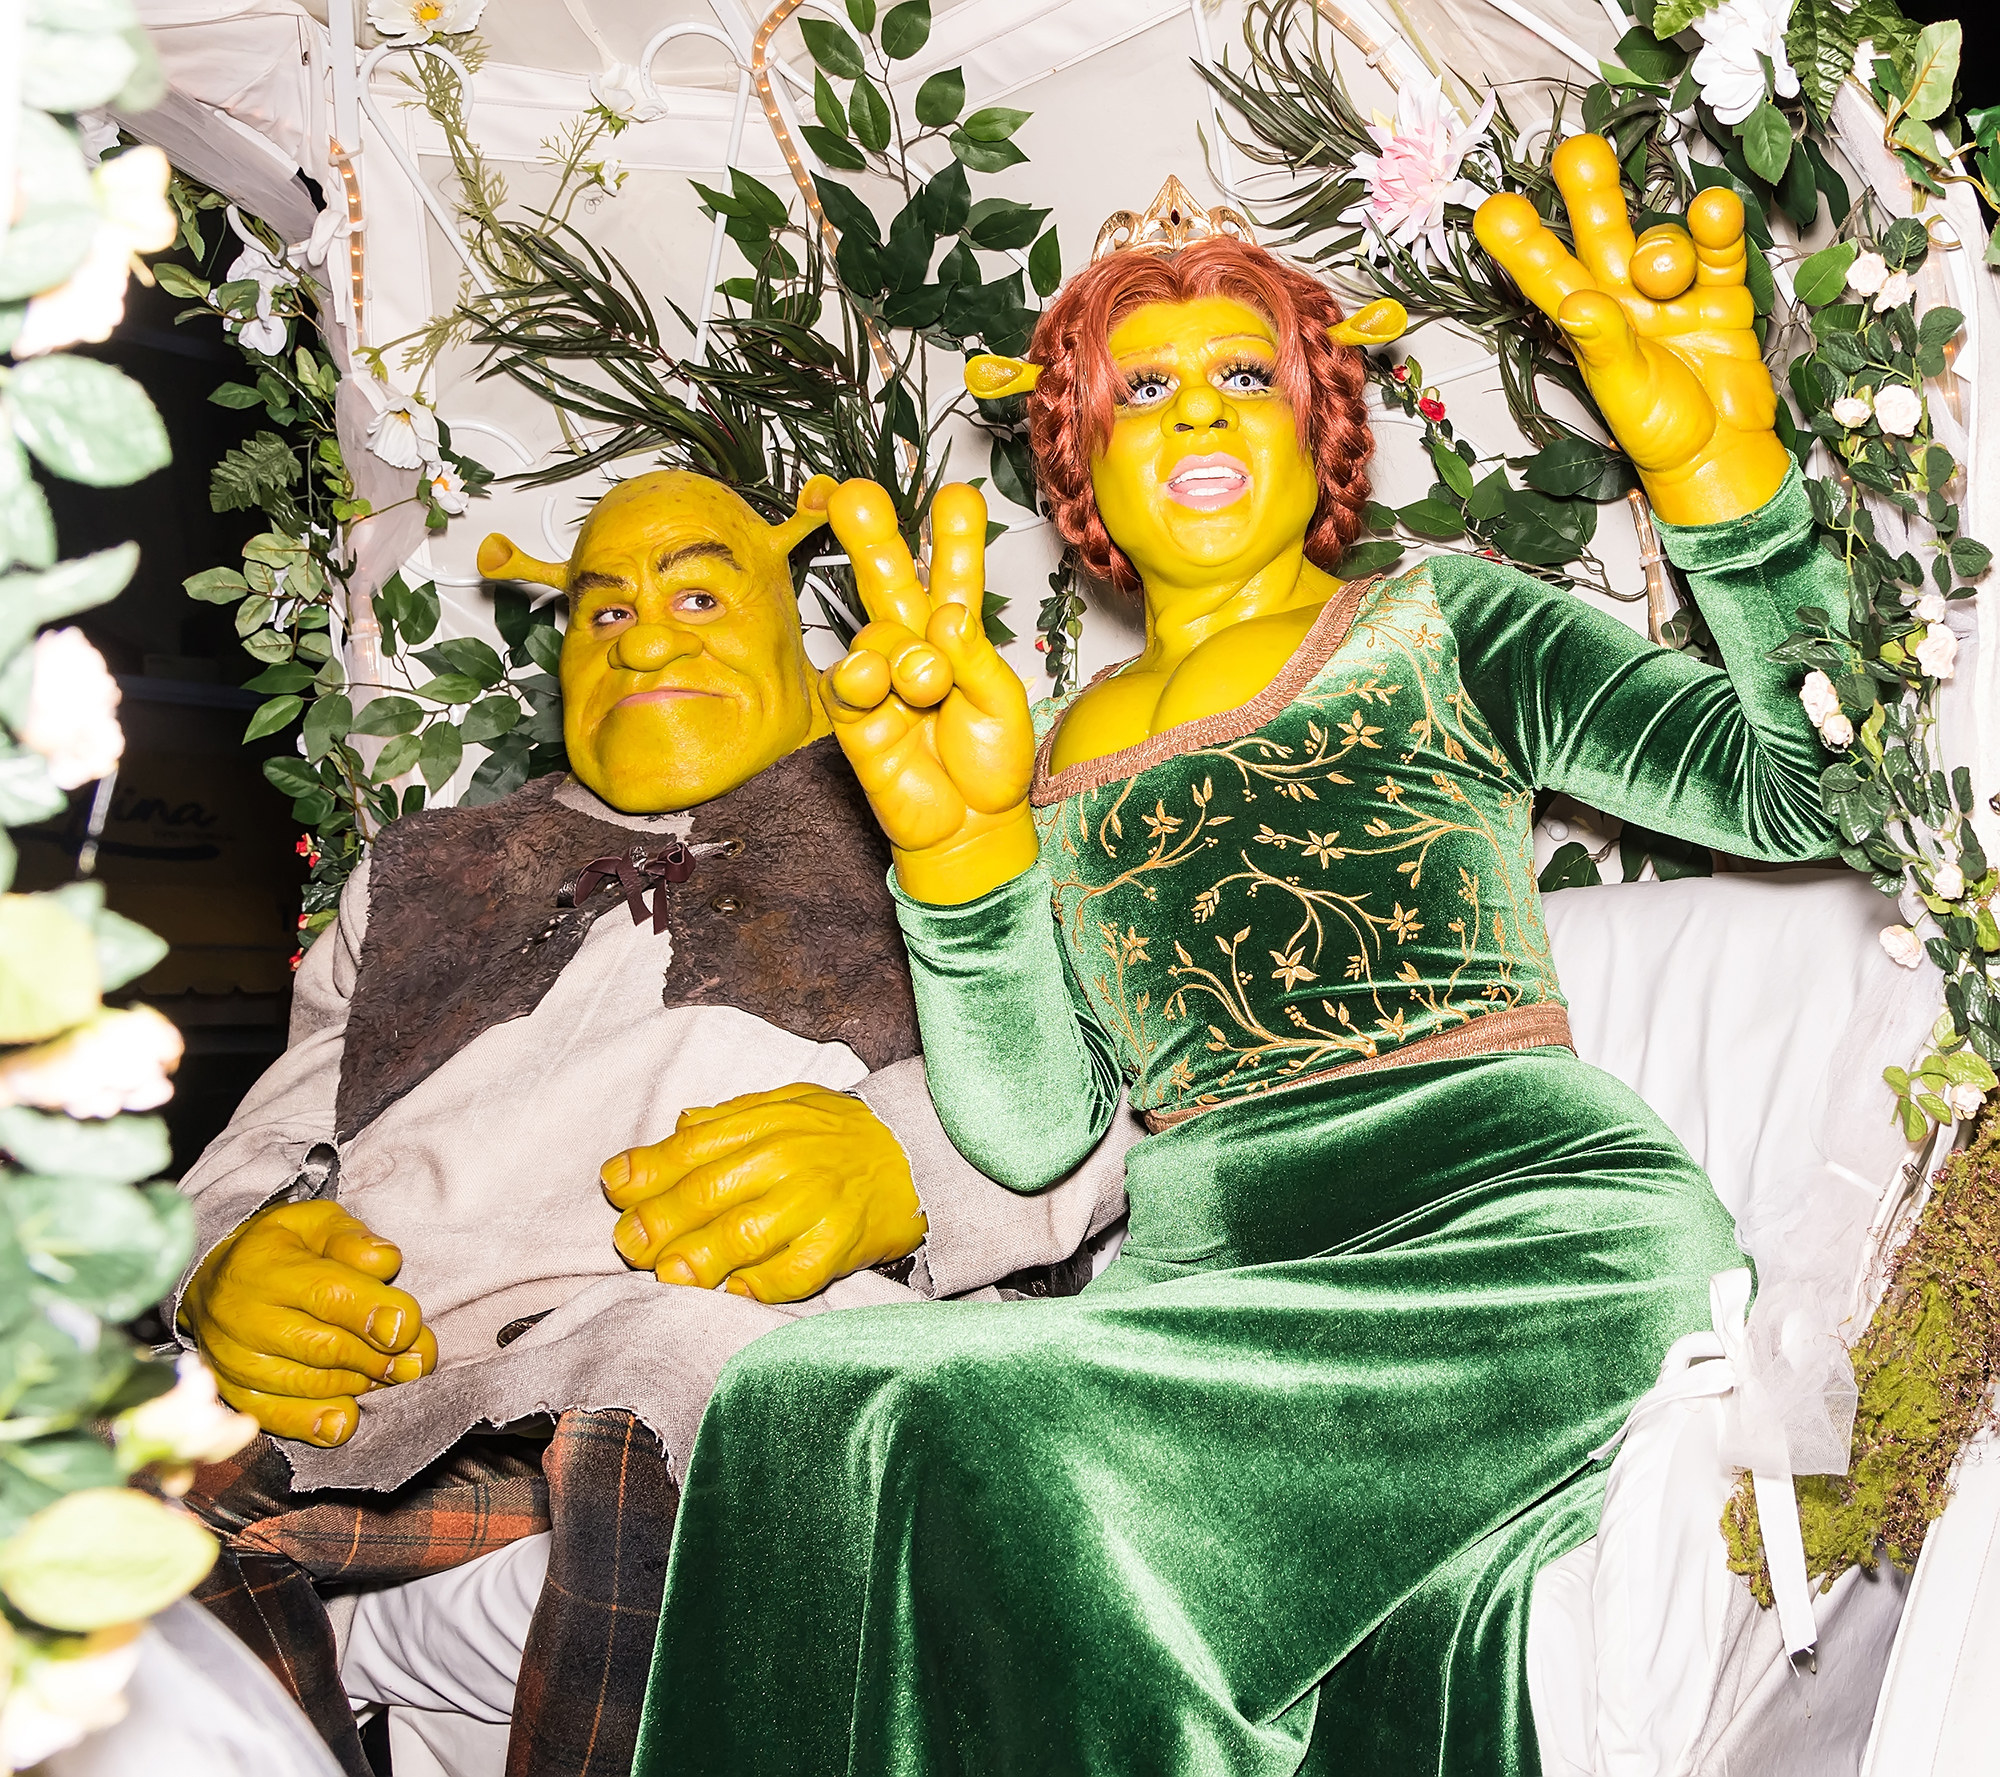 Two people dressed as Shrek and Princess Fiona